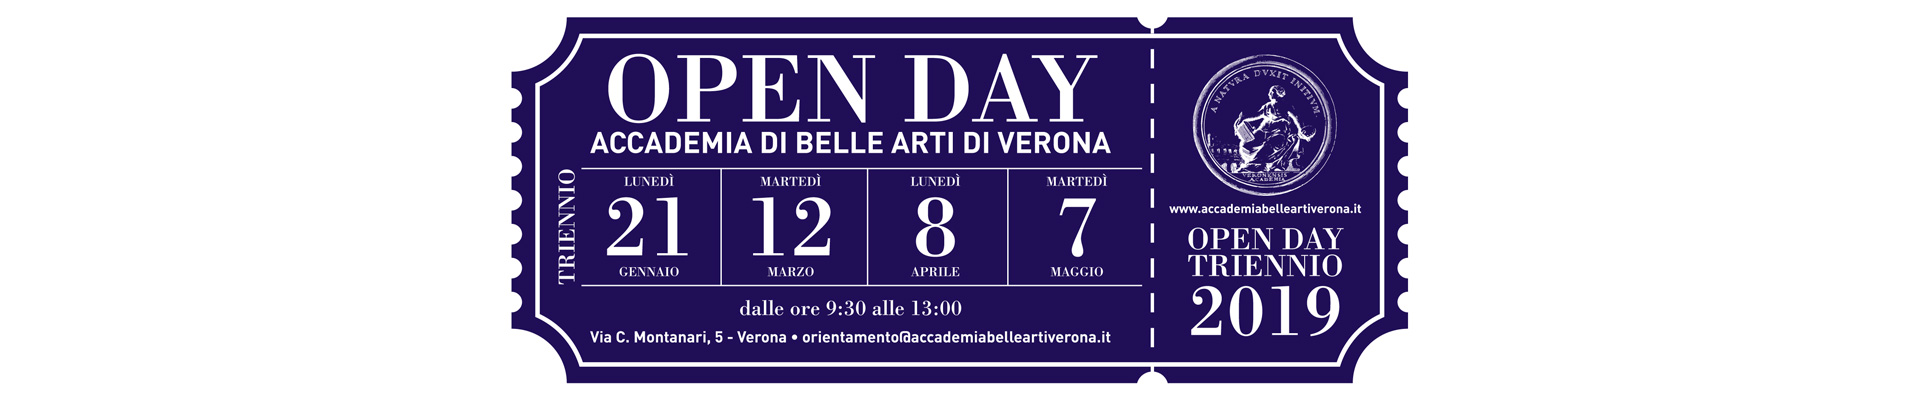 OPEN-DAY-TRIENNIO